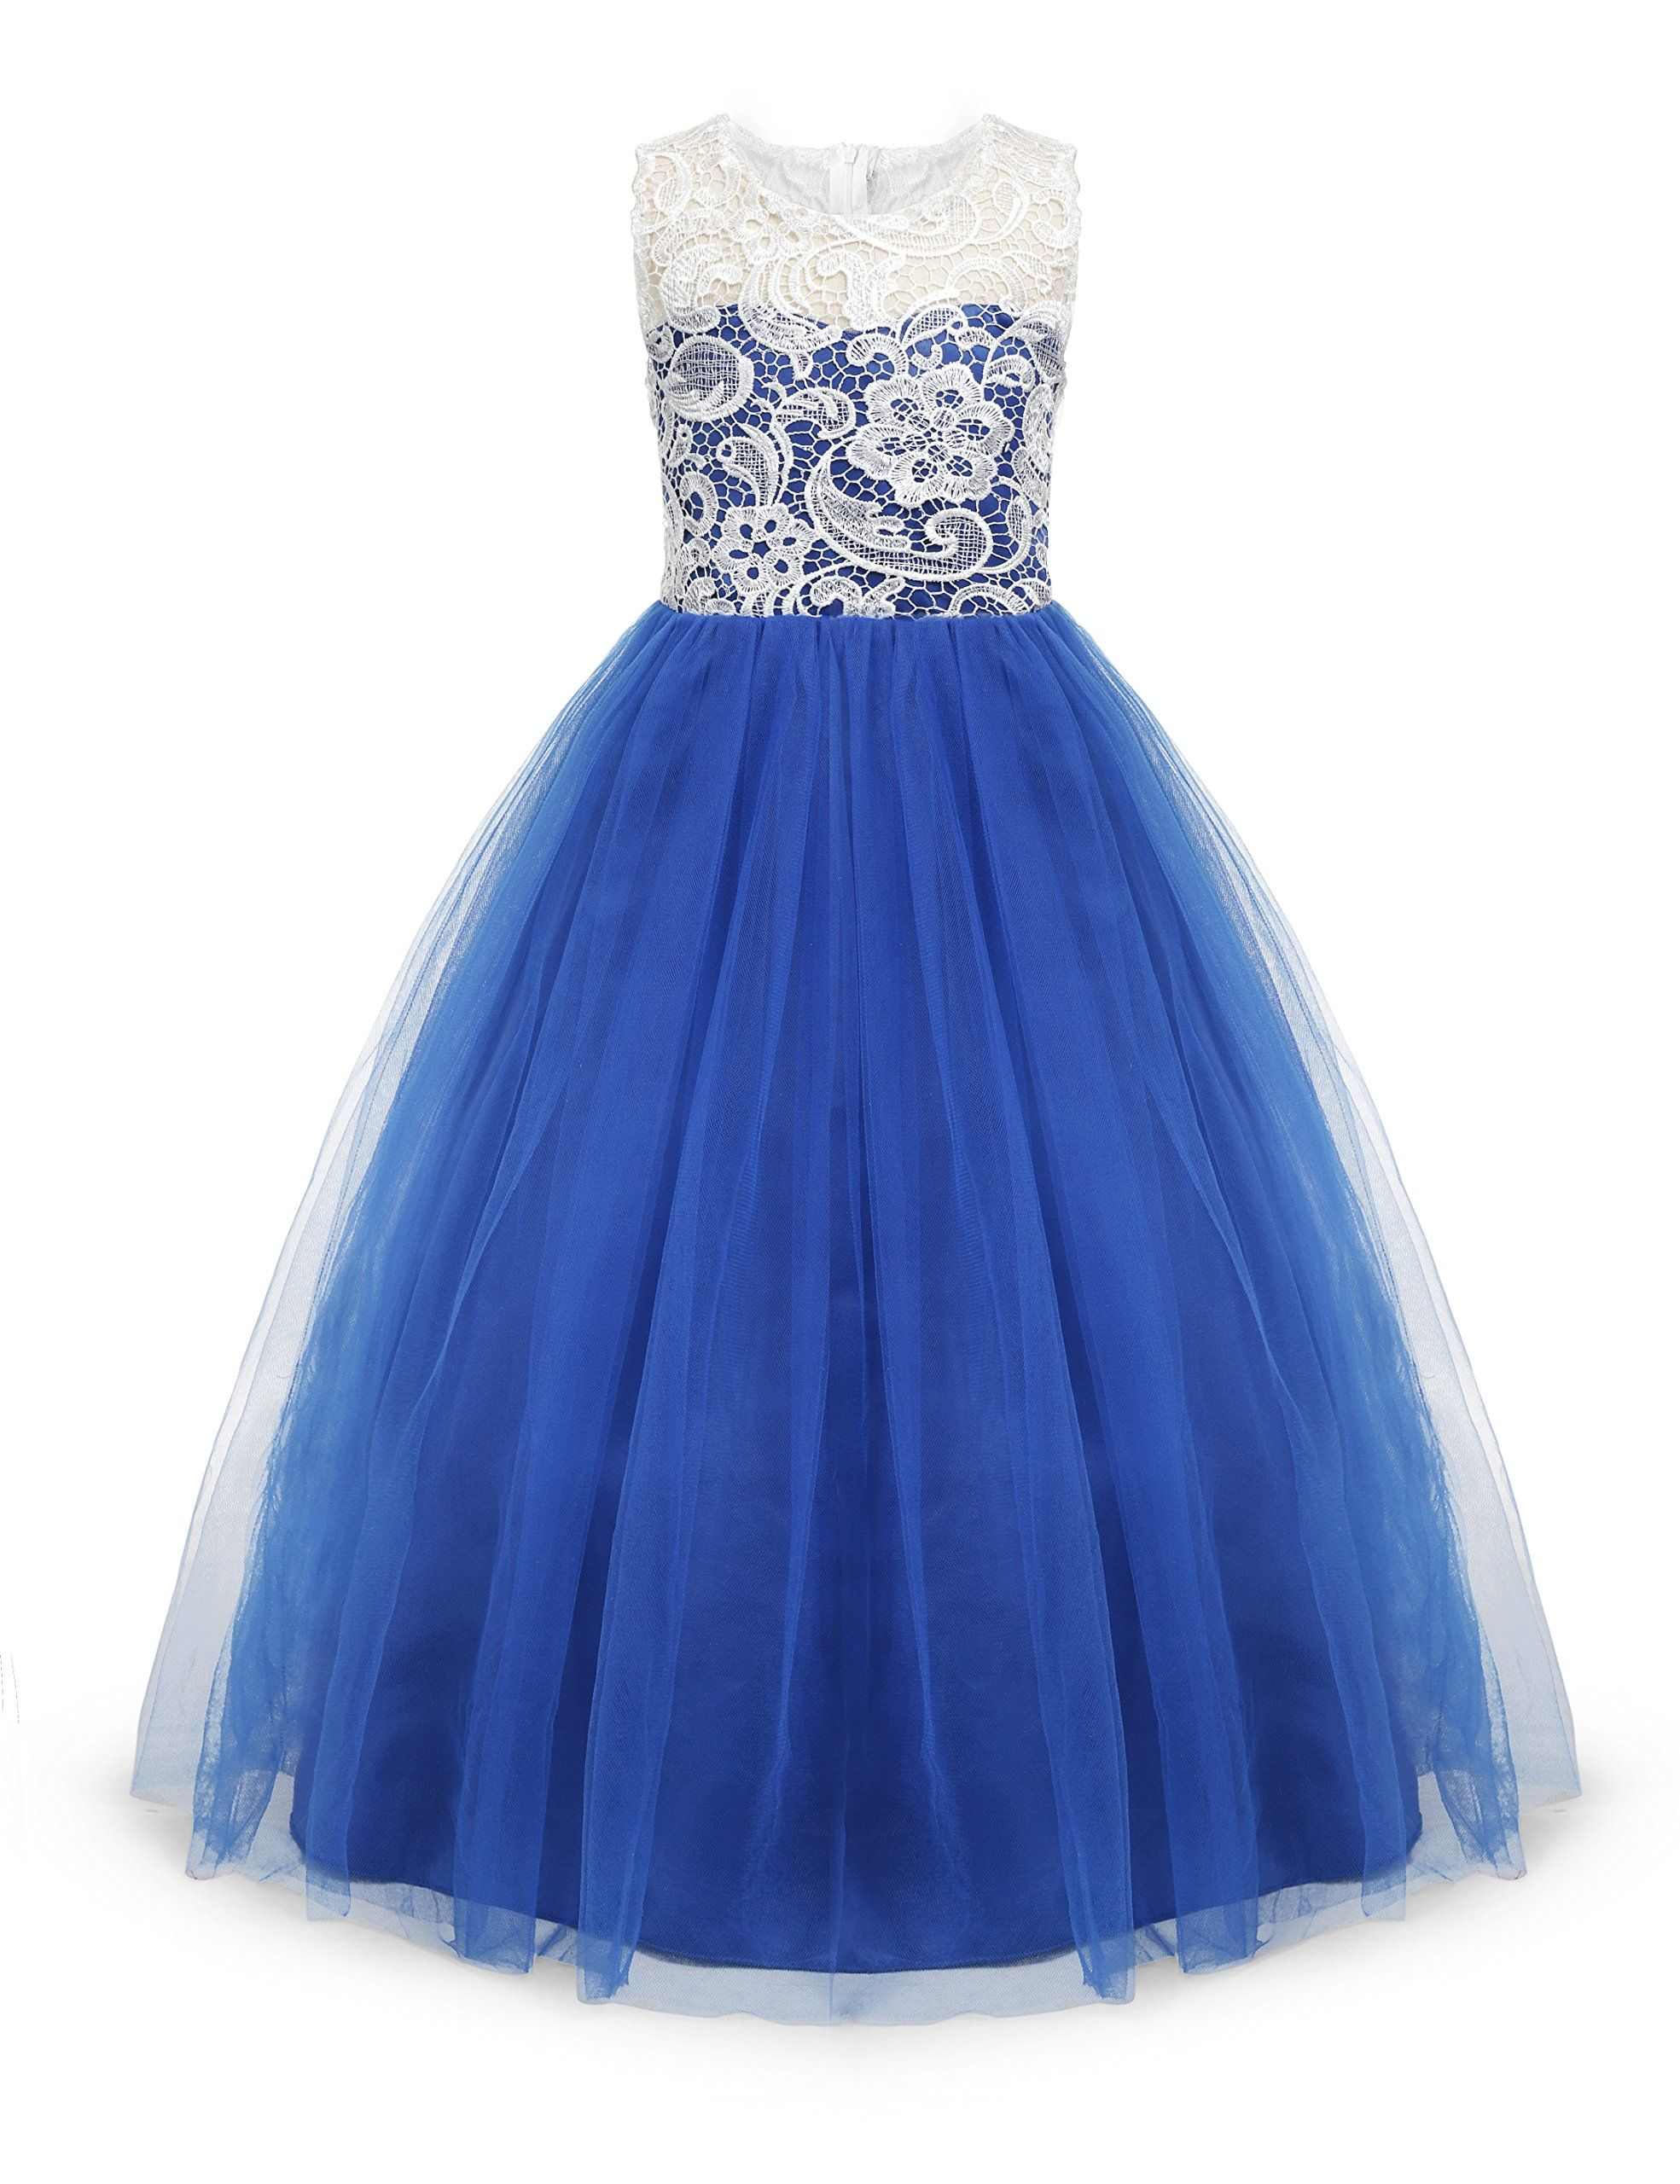 Little Big girls party gown princess lace dress Model 569 (3-4 Years ... 08481710ed26